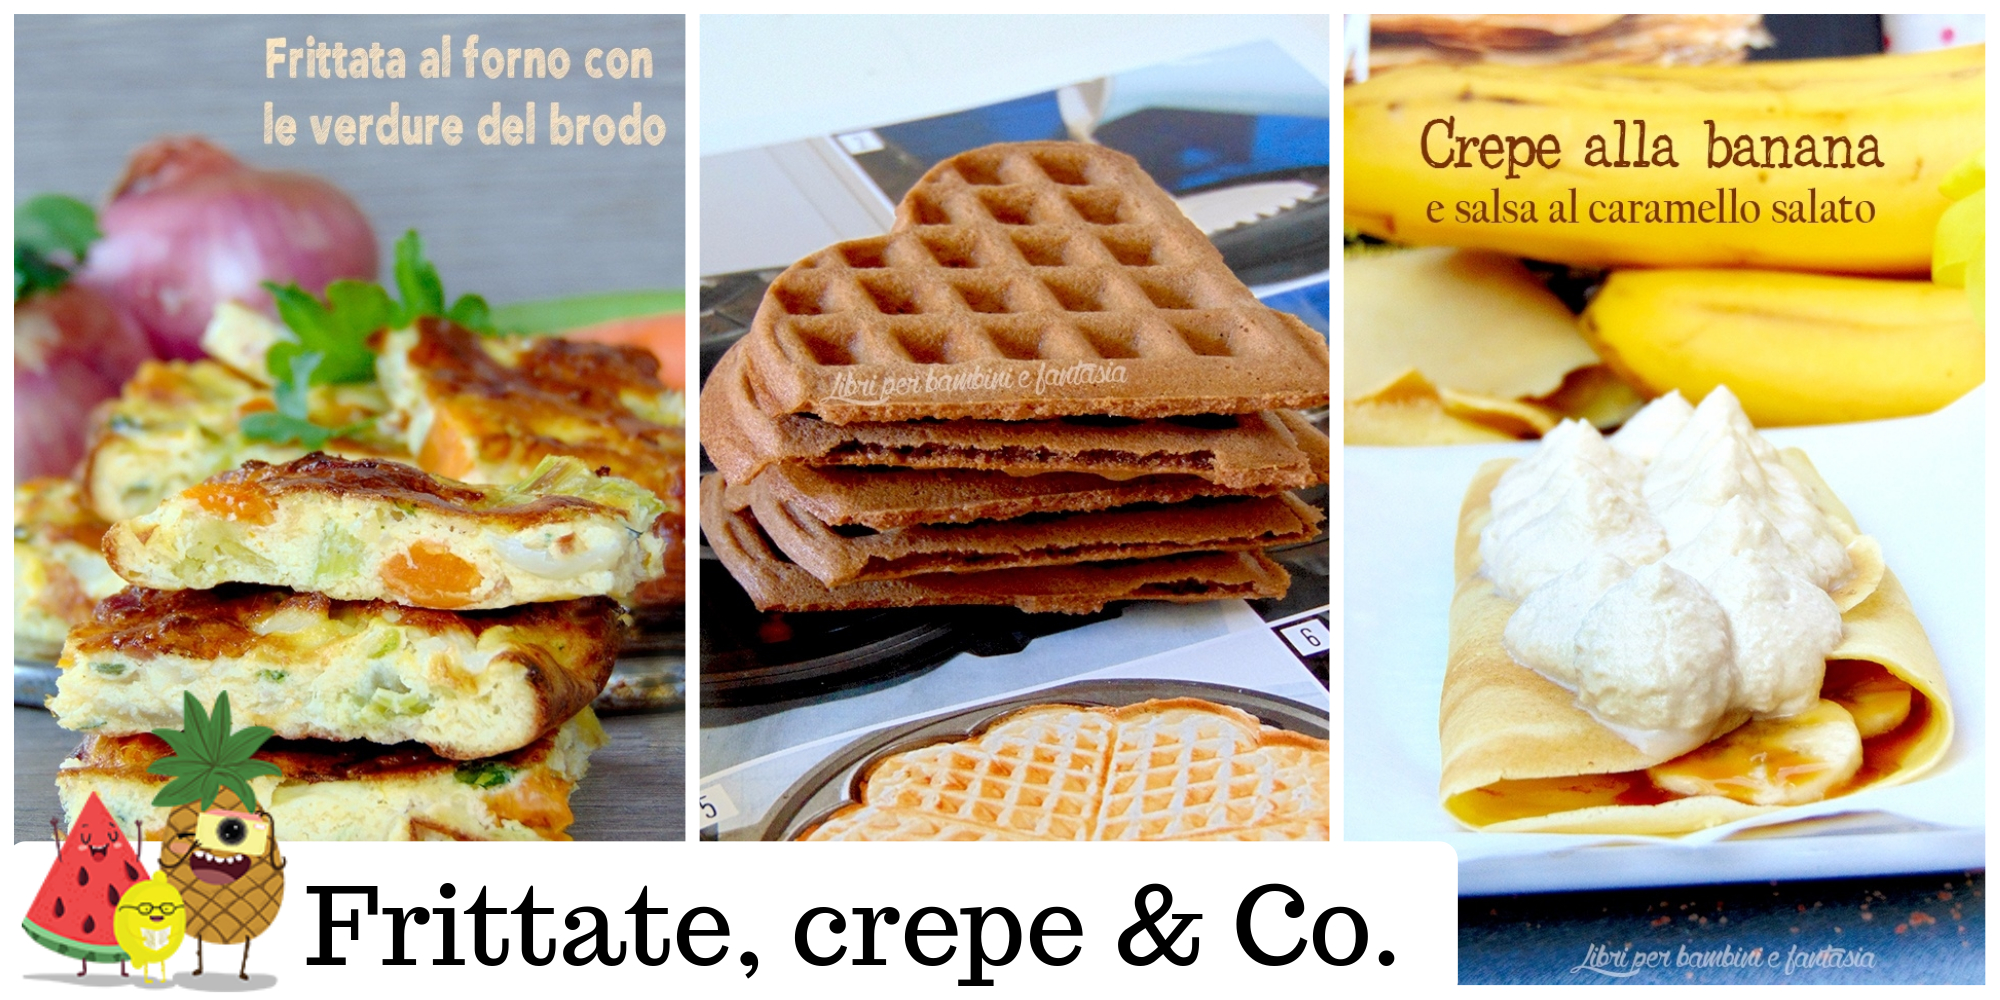 Frittate, crepe & Co.